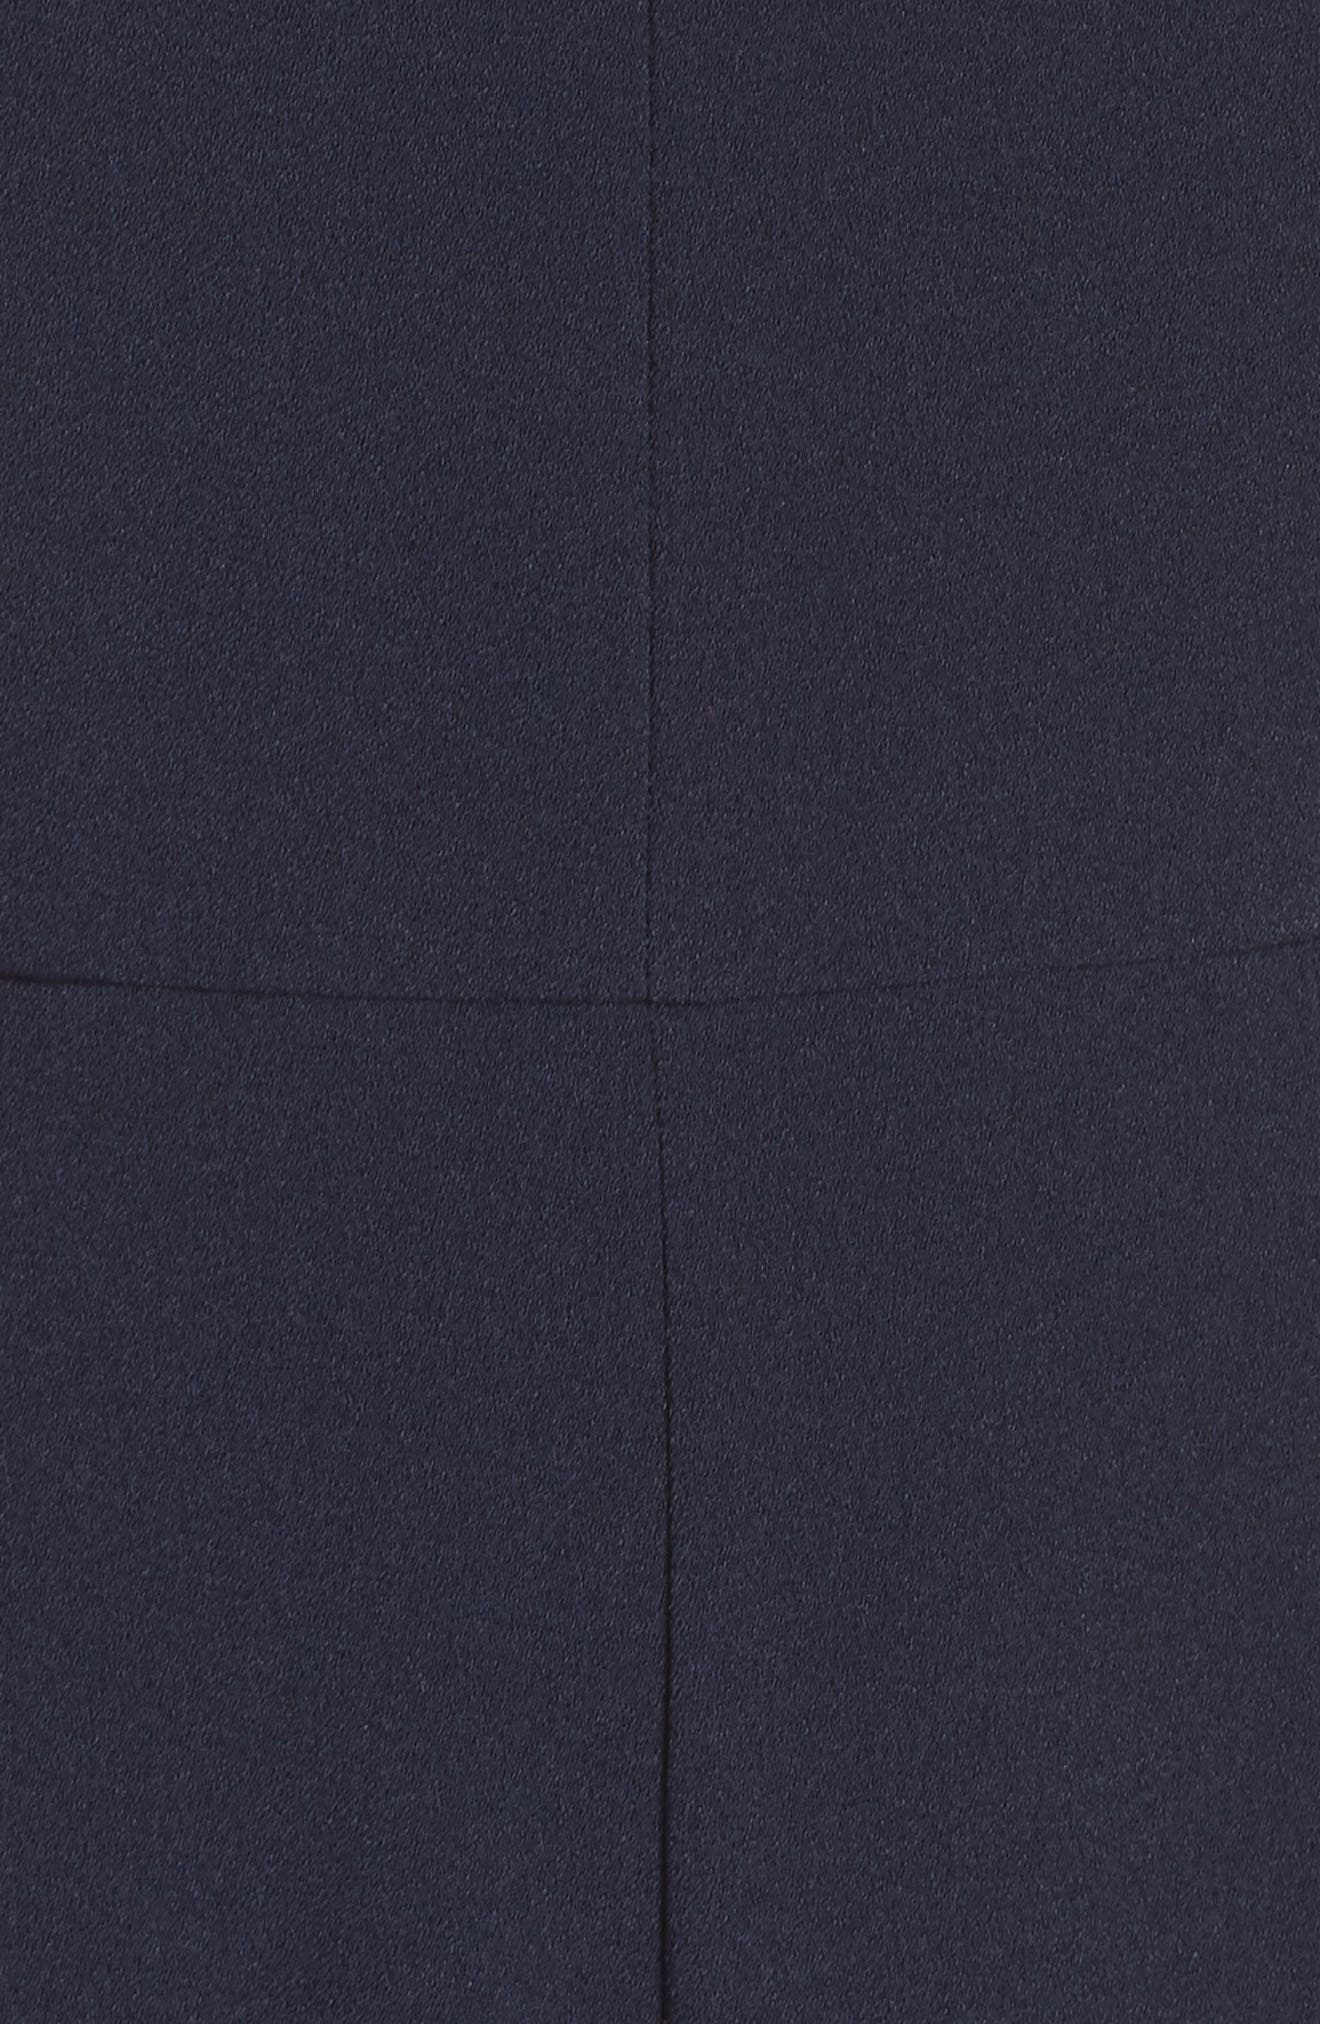 Halter Neck Jumpsuit,                             Alternate thumbnail 6, color,                             NAVY